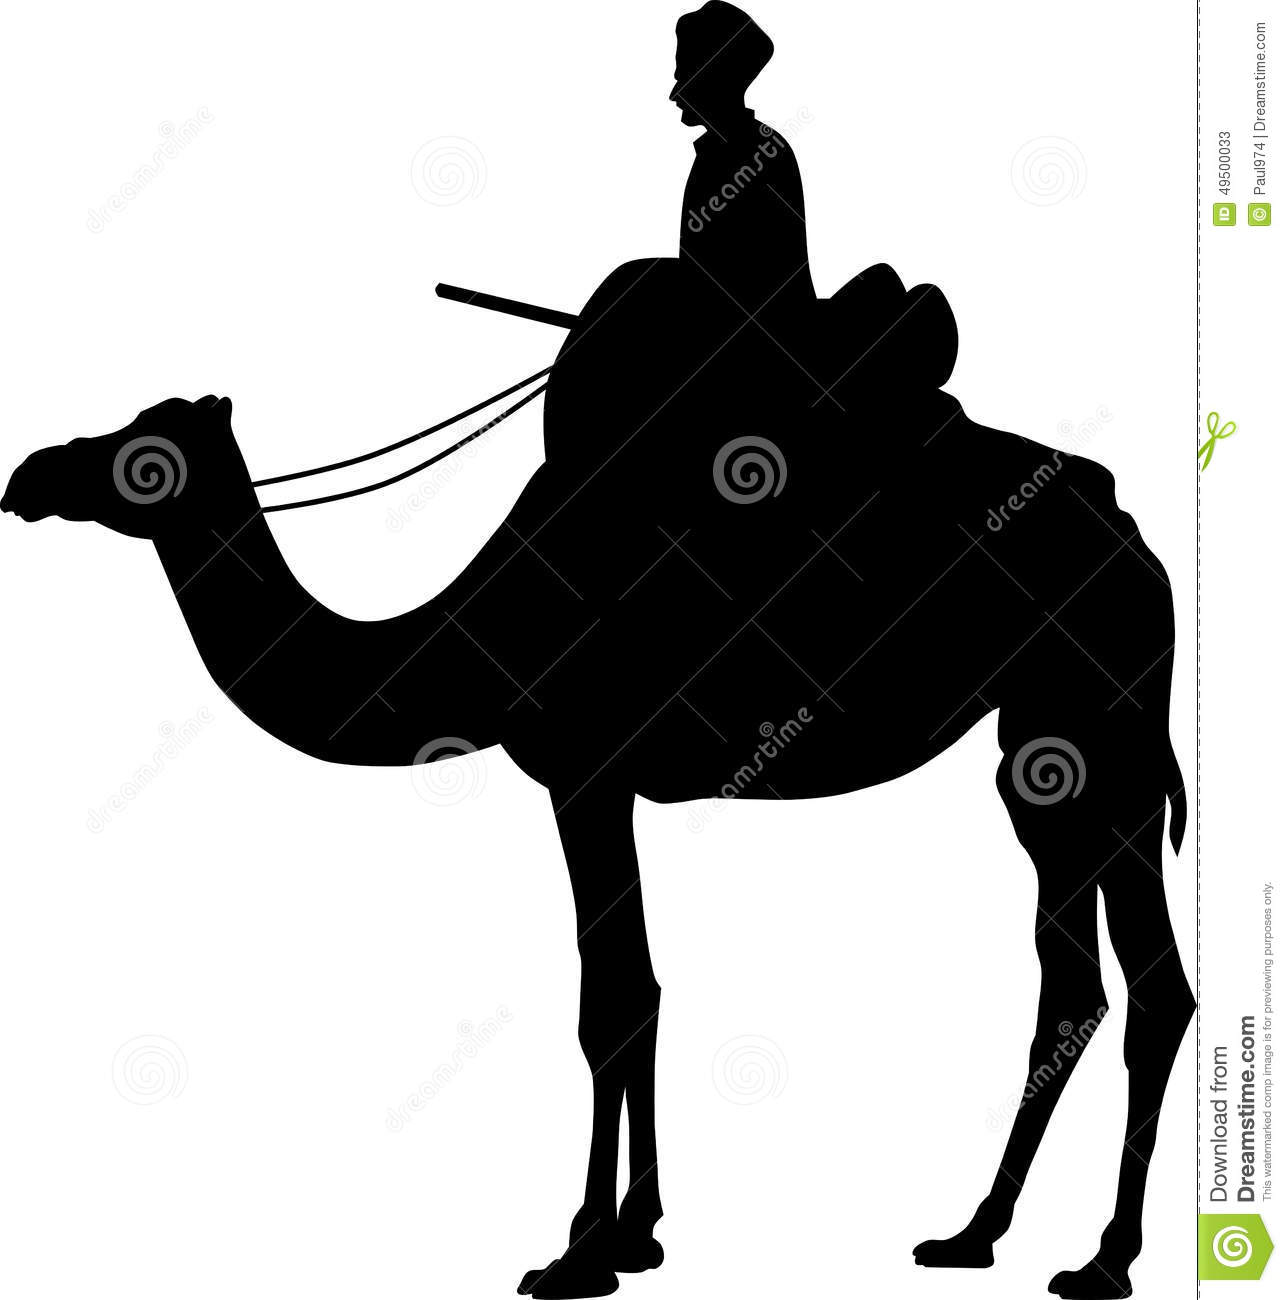 Simple illustration of Camel silhouette on white background.